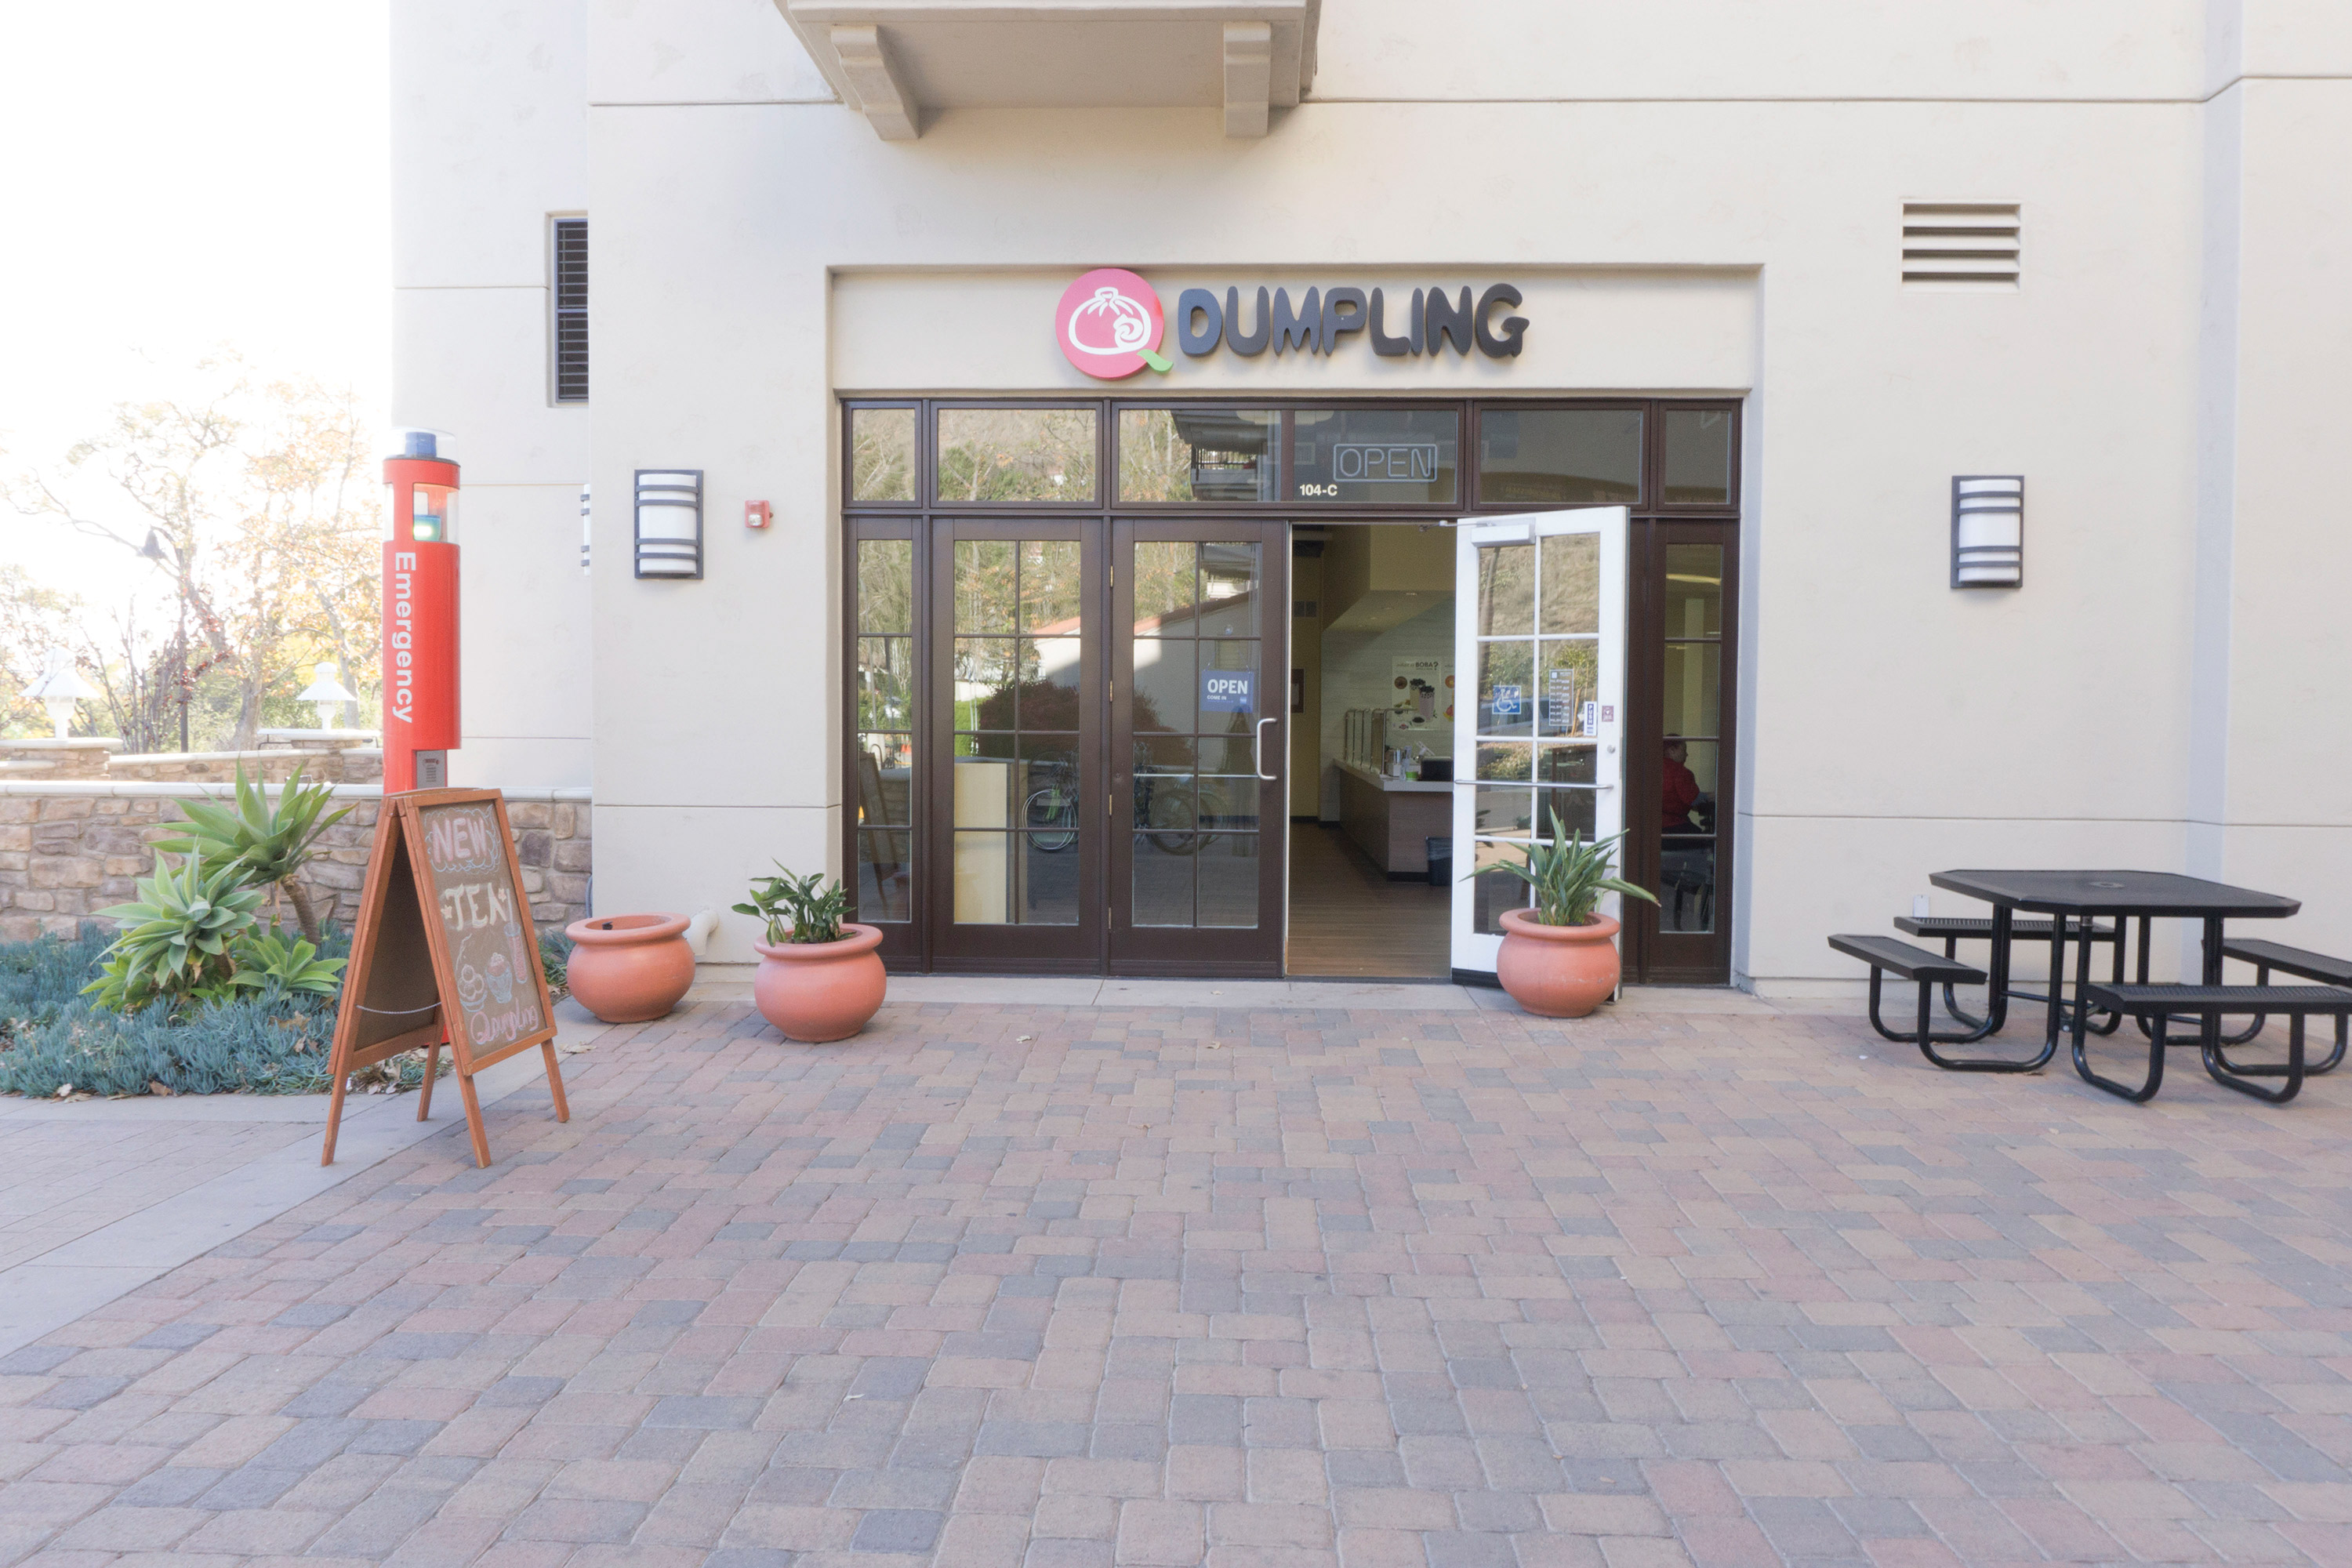 The entrance to Town Center's newest restaurant, Q Dumpling. All food is made to order and includes fresh ingredients. Photo credit to Dennys Rico.